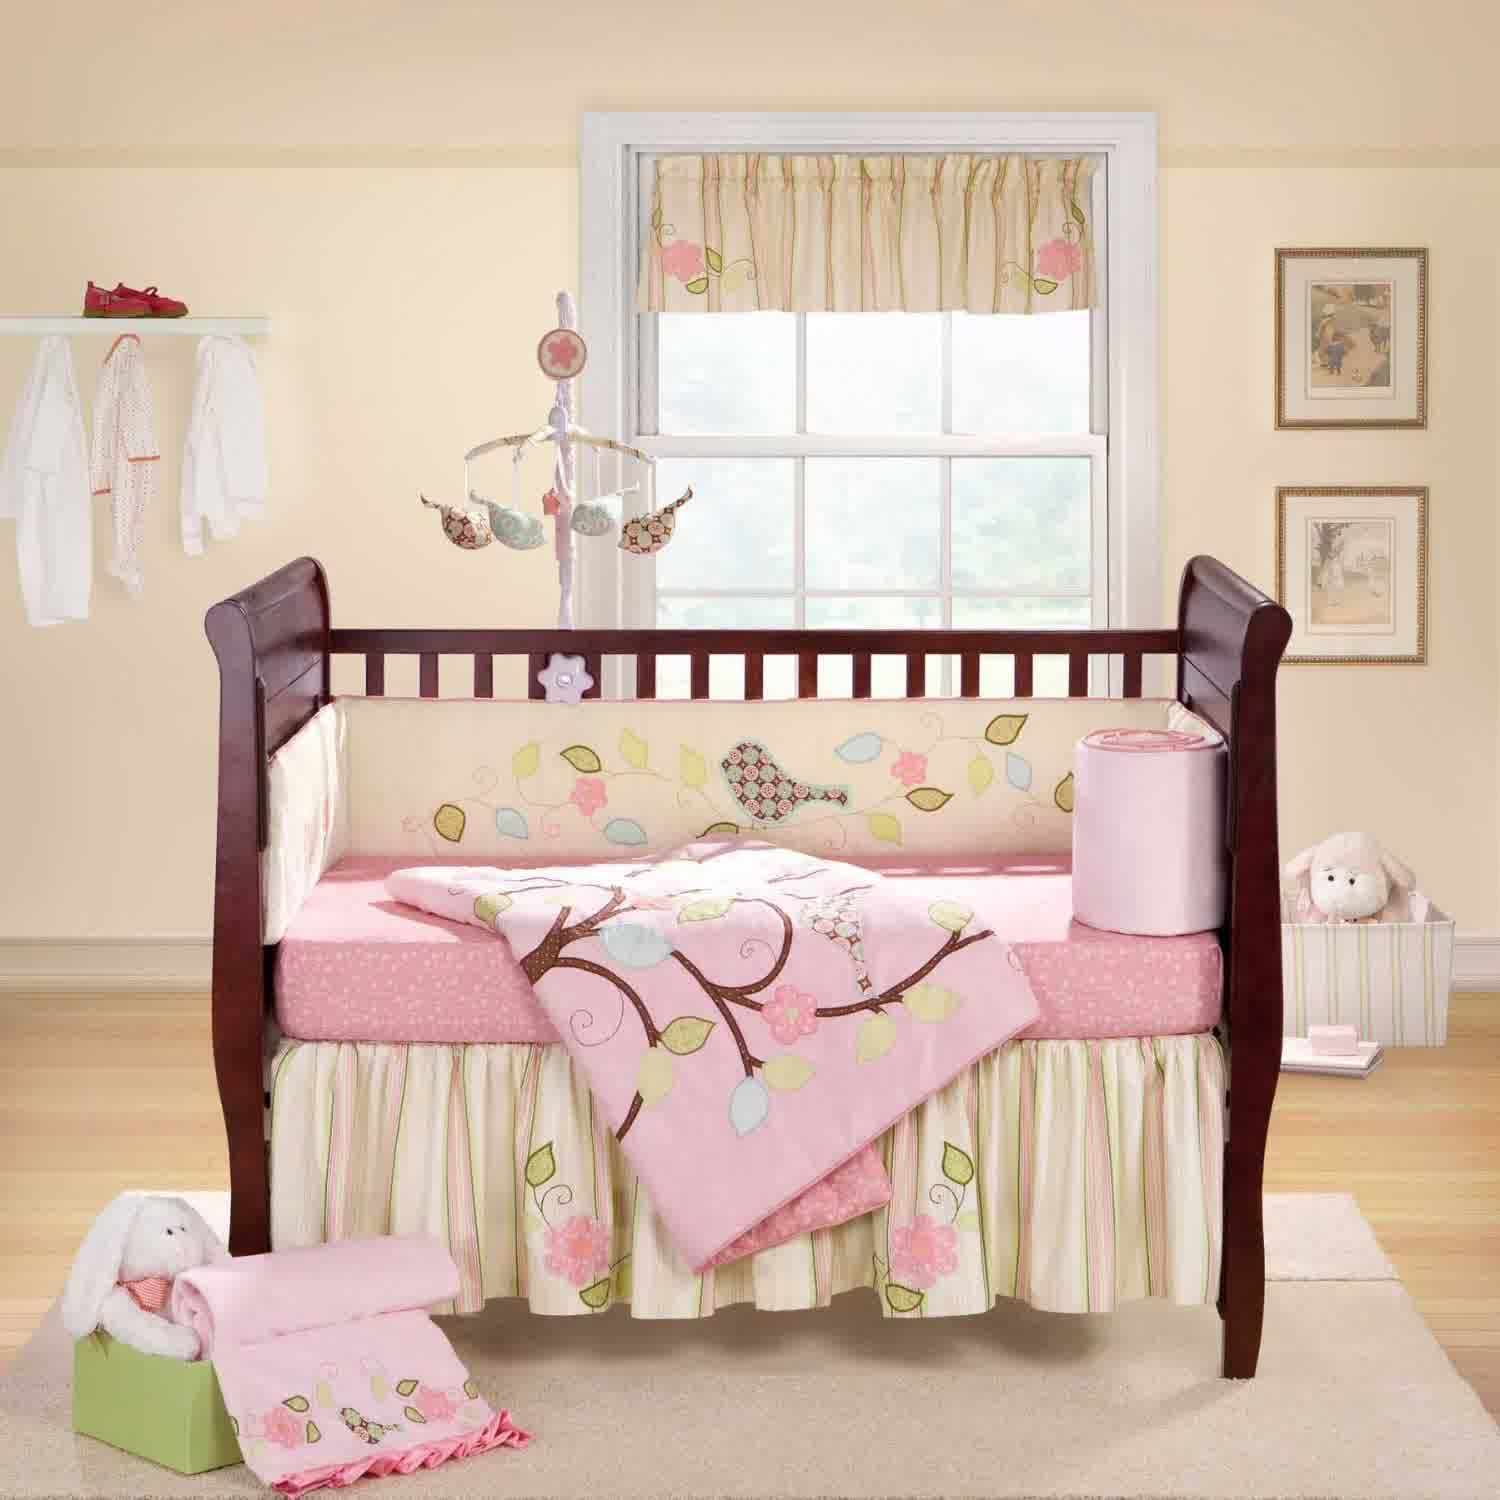 Refreshing go green design for nursery homesfeed for Cream and pink bedroom ideas